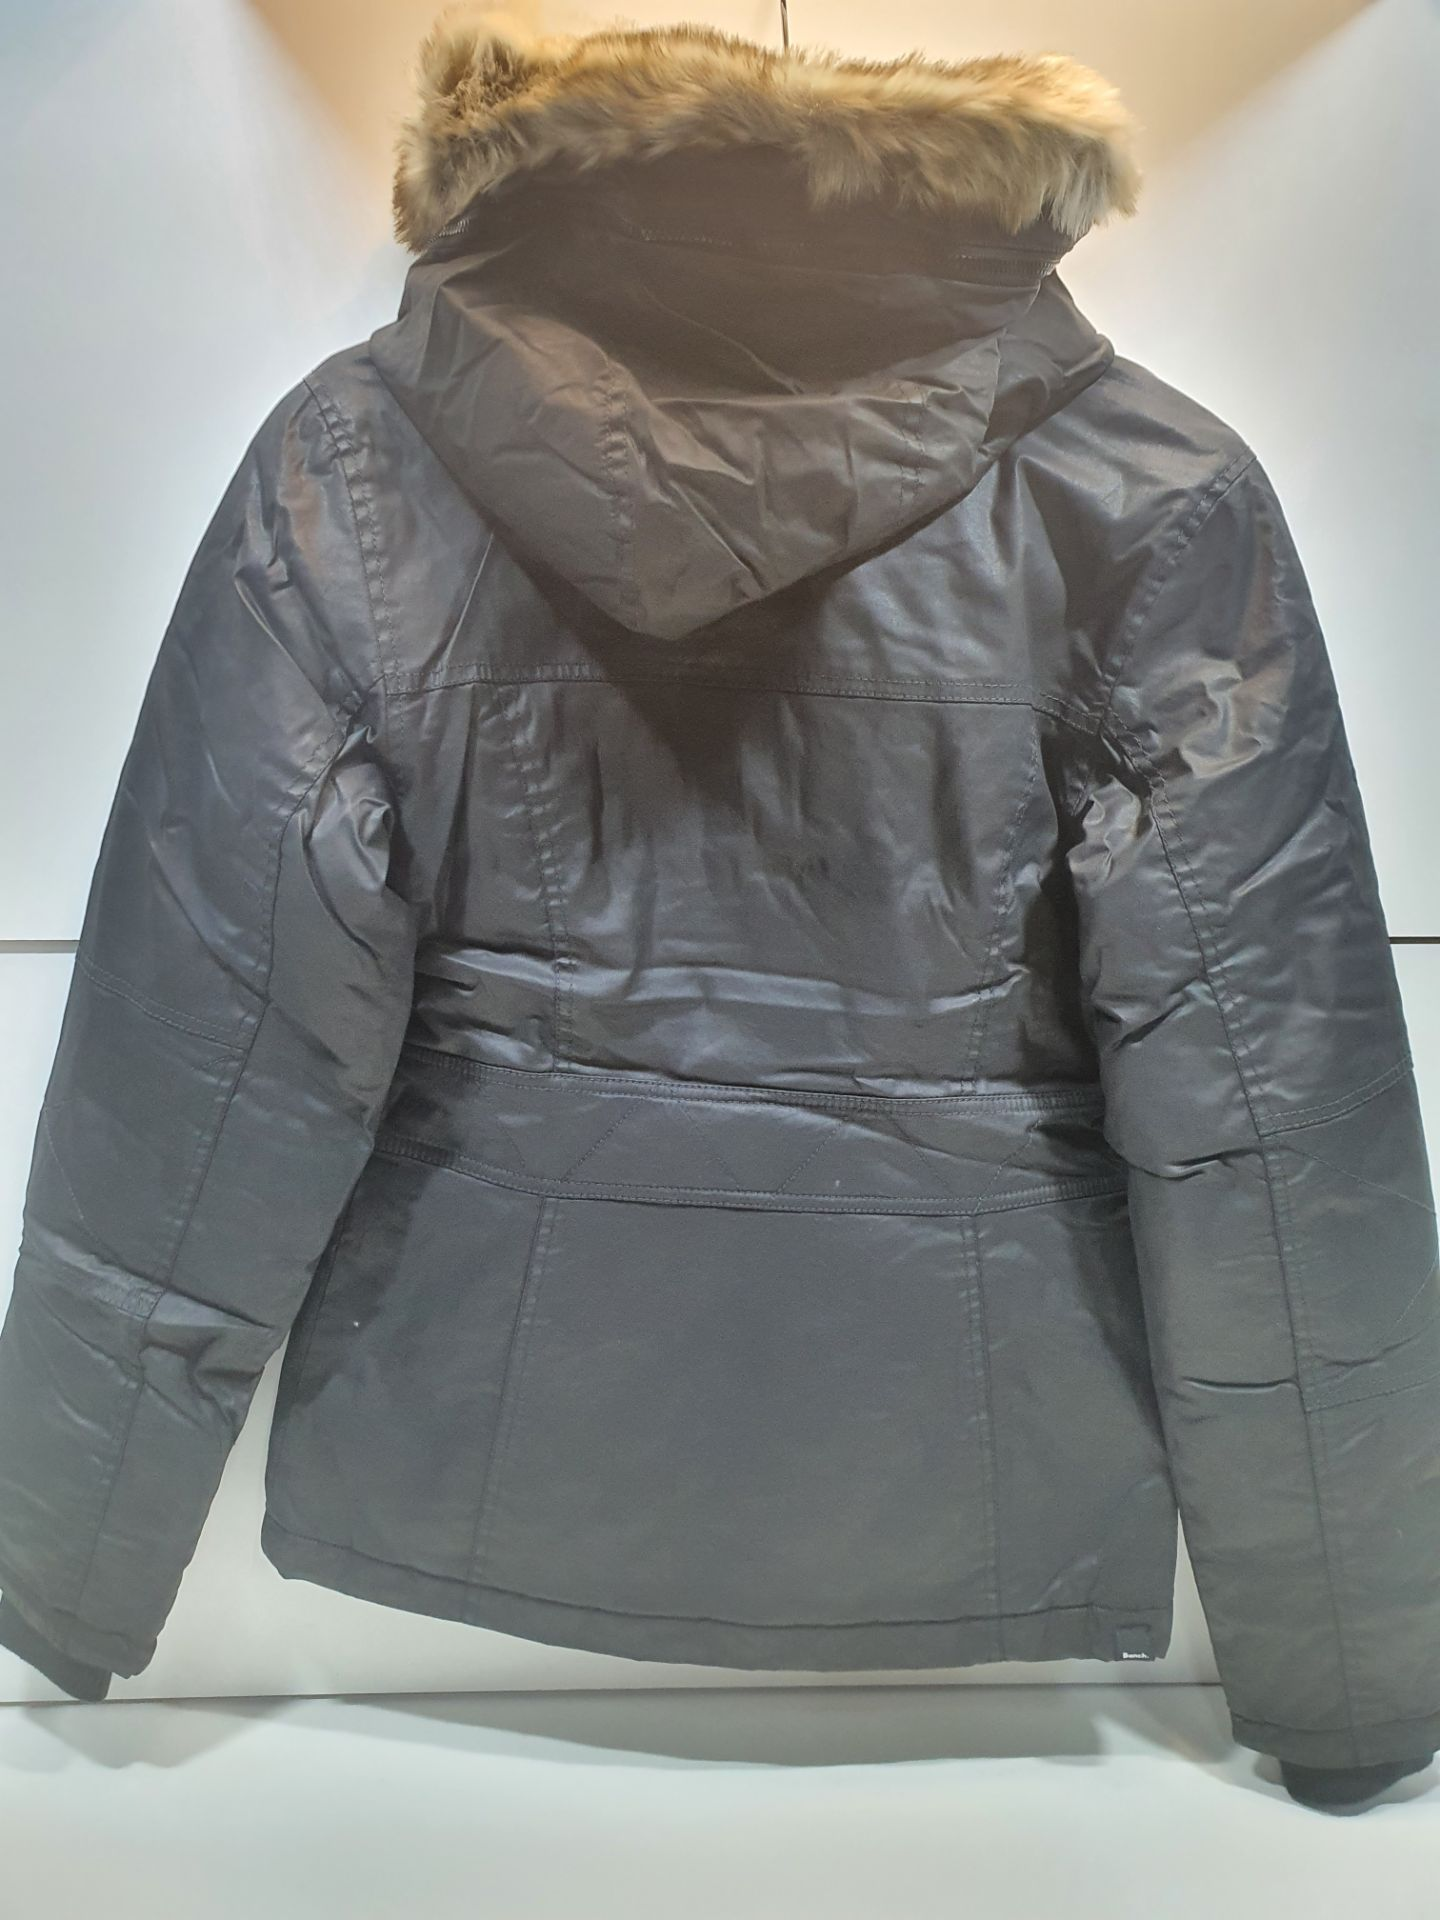 Bench Women's Lightly Padded Jacket w/Hood - Image 2 of 2